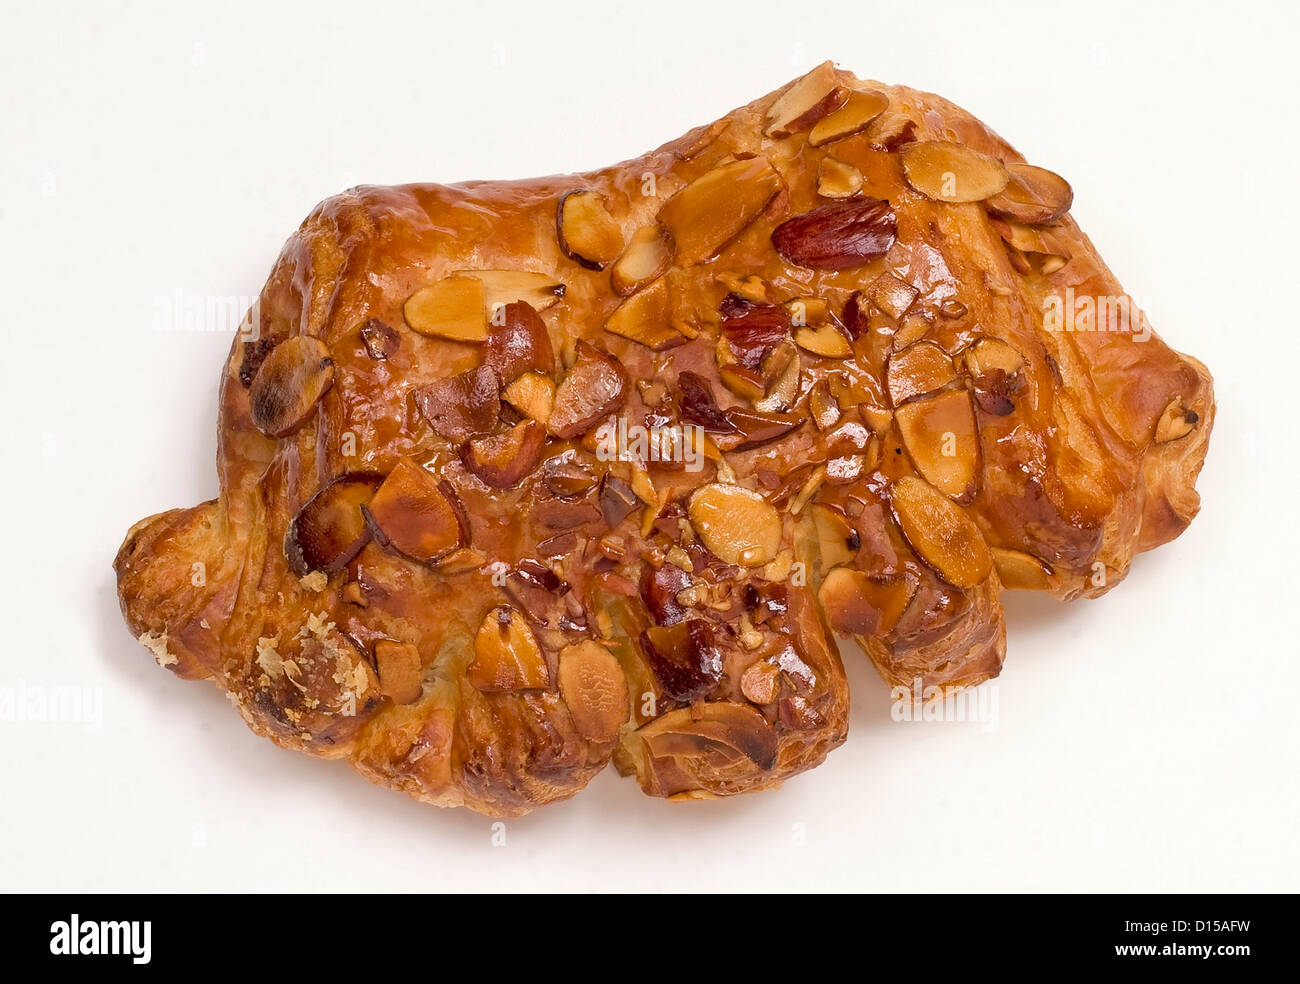 Bear claw pastry. - Stock Image